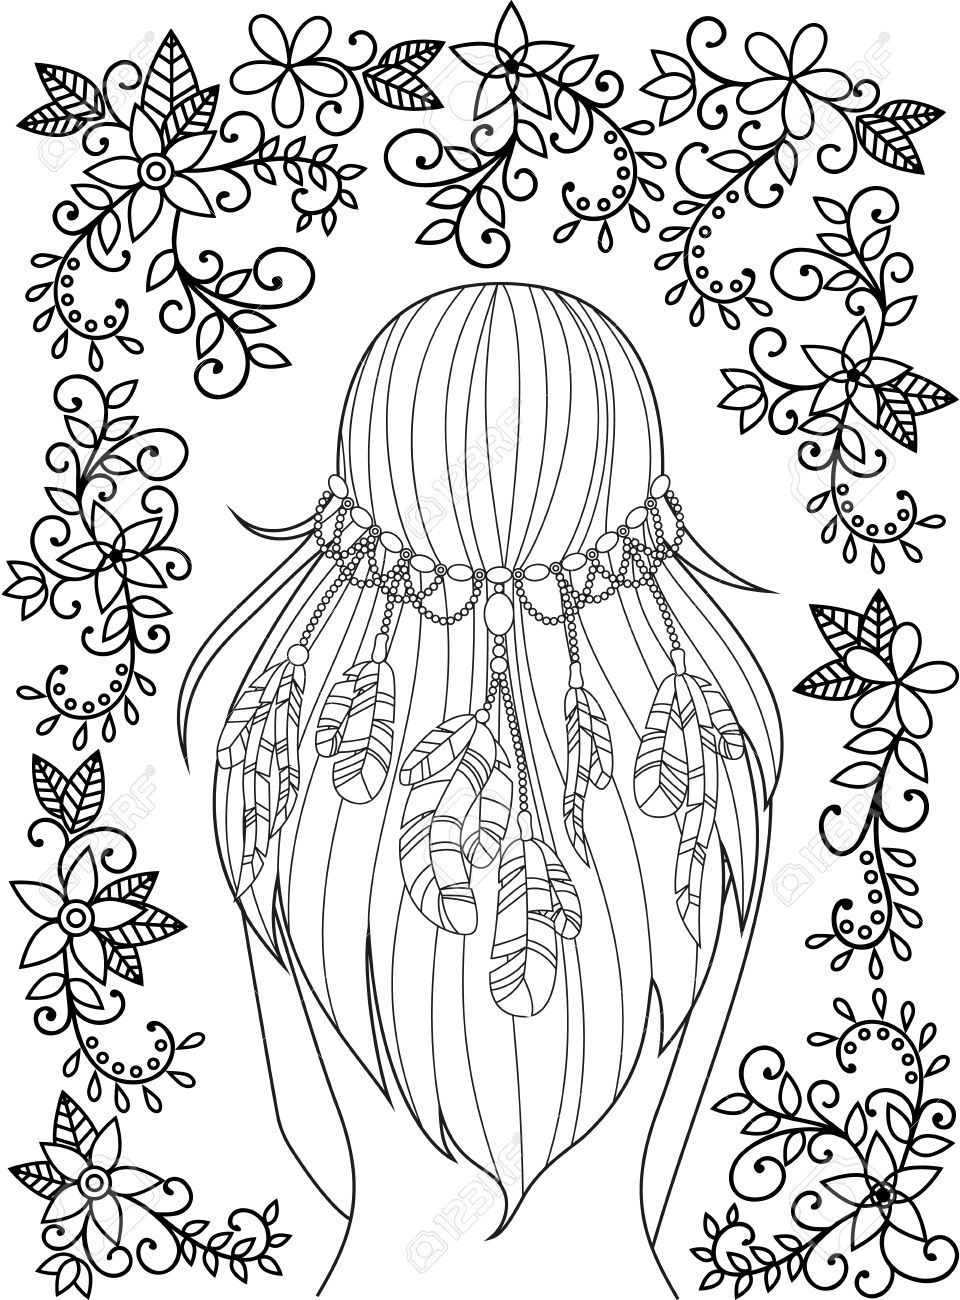 girl with feathers in her hair and floral pattern hippie style line art - Hippie Coloring Book